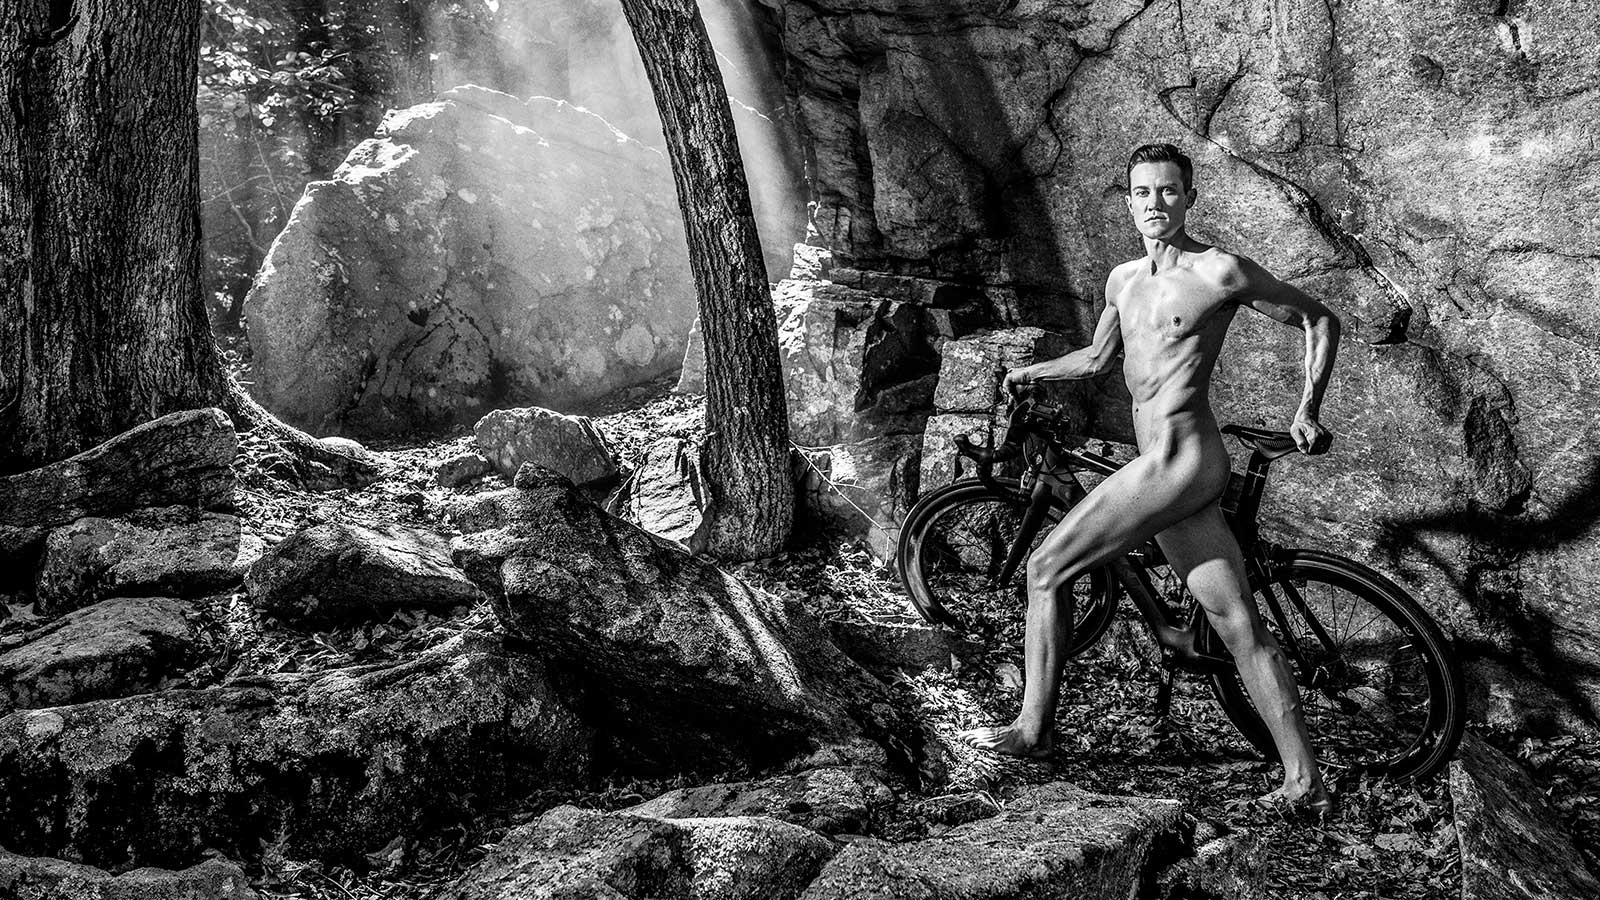 Chris Mosier, Triathlete, featured in the Body Issue 2016: Fully Exposed on ESPN the Magazine